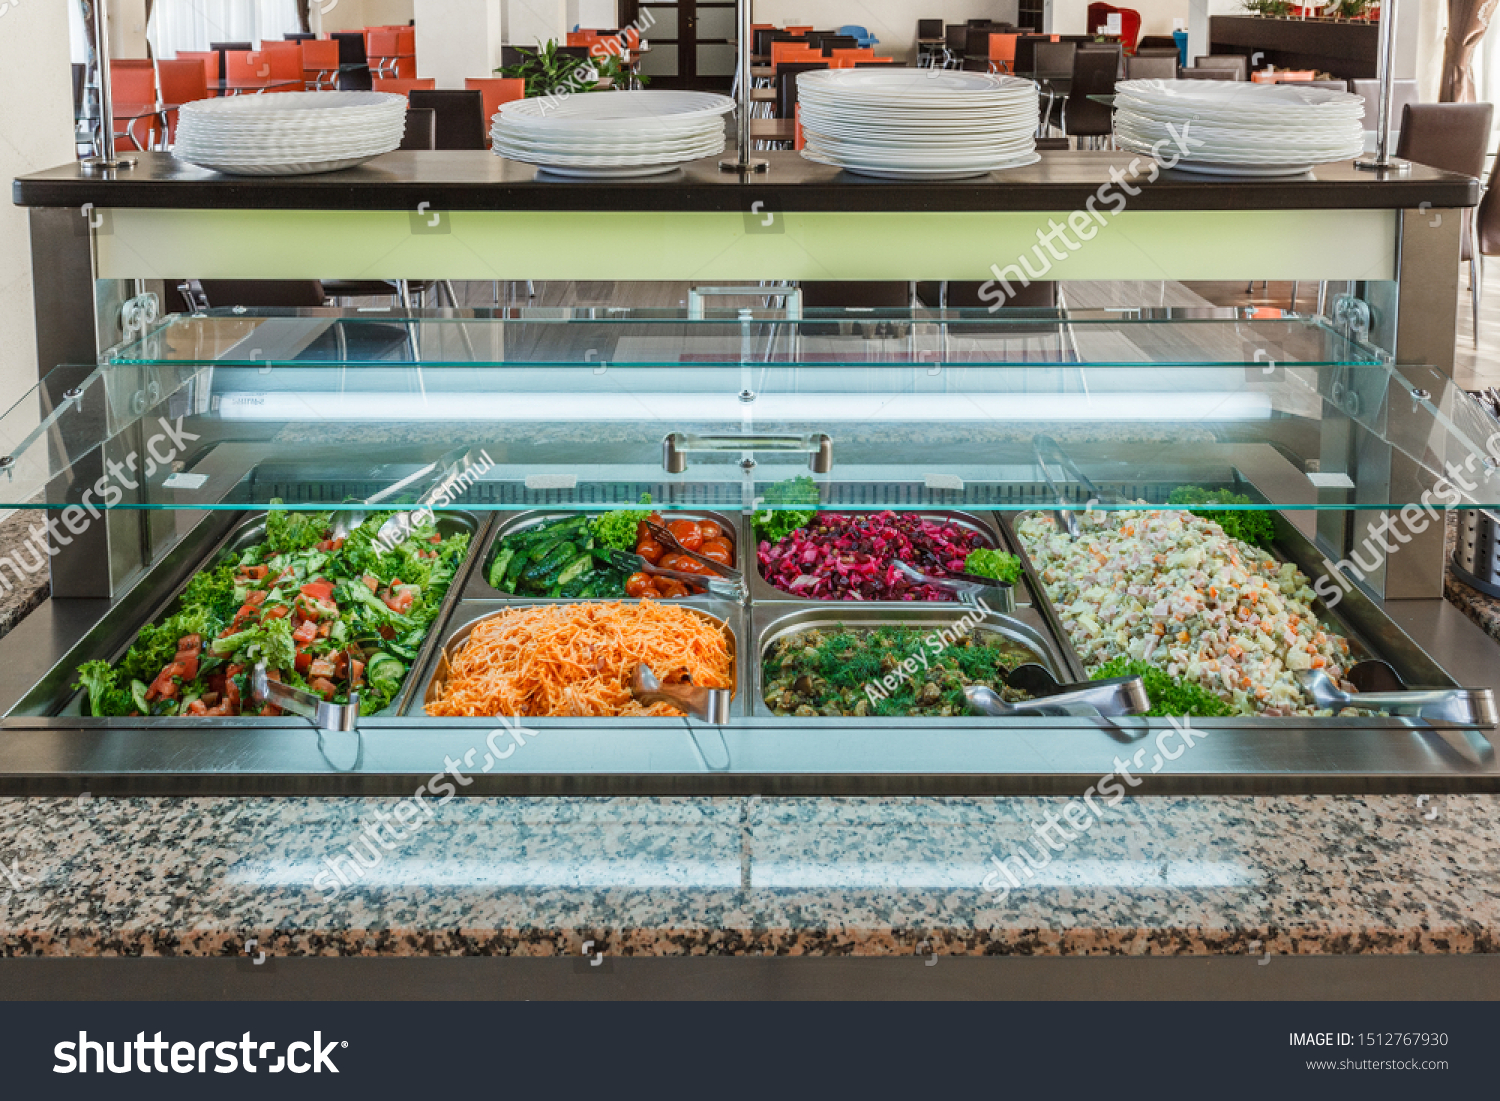 Buffet Dining Room Distribution Dishes Miscellaneous Stock Image 1512767930